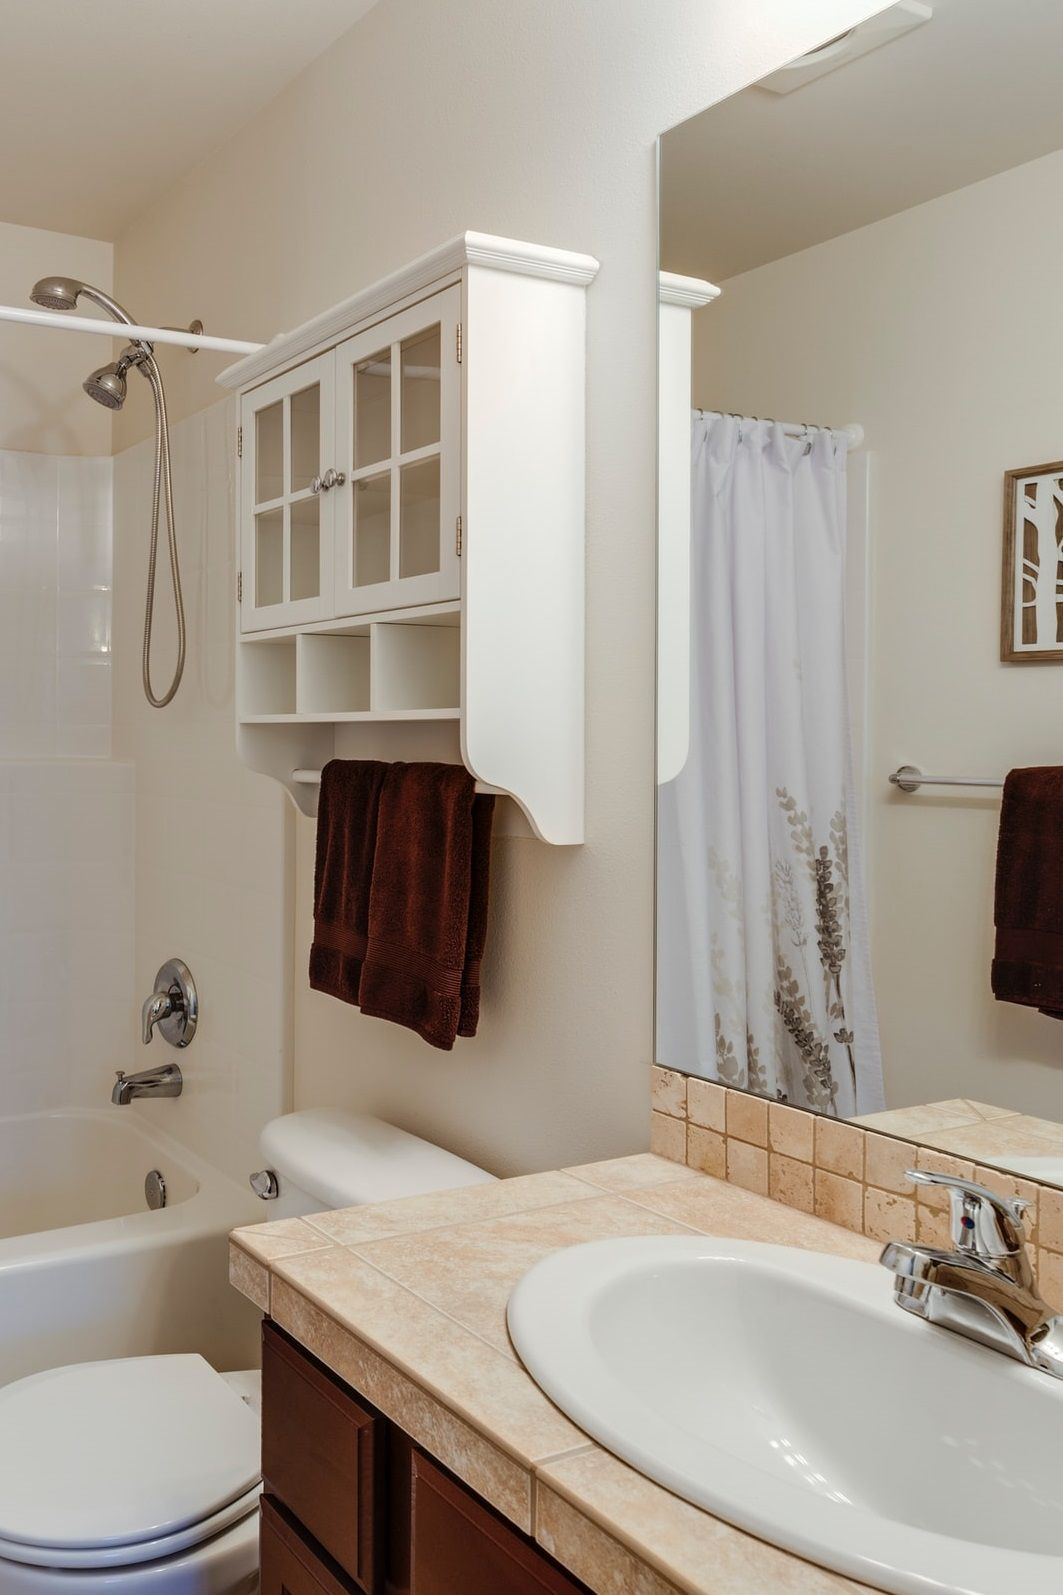 65 Small Bathroom Decoration Tips How To Make A Small Bathroom Remodeling Look Bigger 49 Modern Bathroom Bathroom Design Minimalist Bathroom